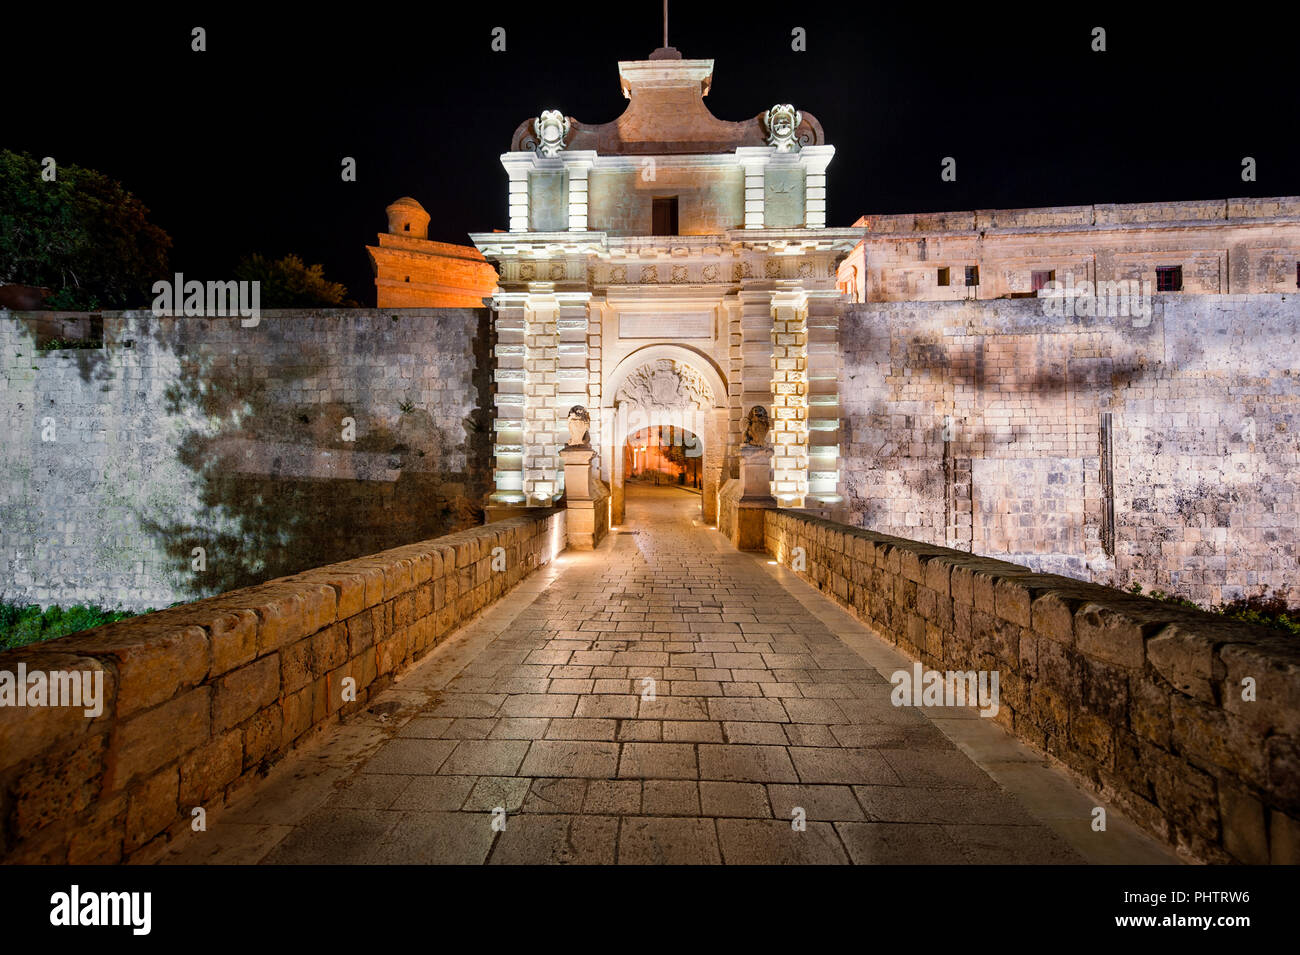 City Gate of Mdina Malta at Night - Stock Image